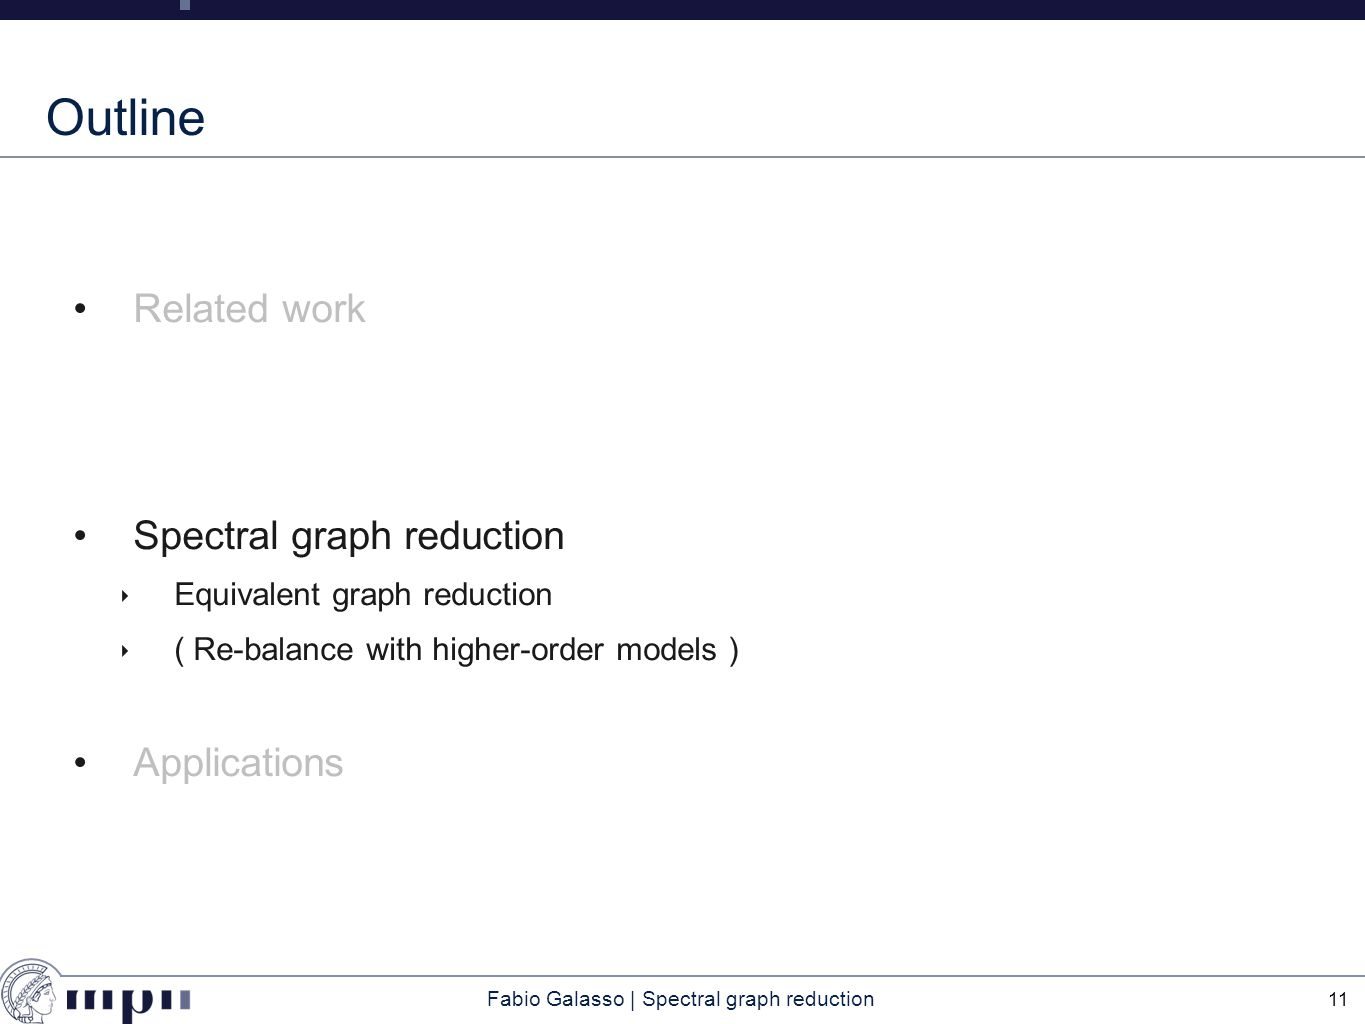 Fabio Galasso | Spectral graph reduction Outline Related work Spectral graph reduction ‣ Equivalent graph reduction ‣ ( Re-balance with higher-order models ) Applications 11